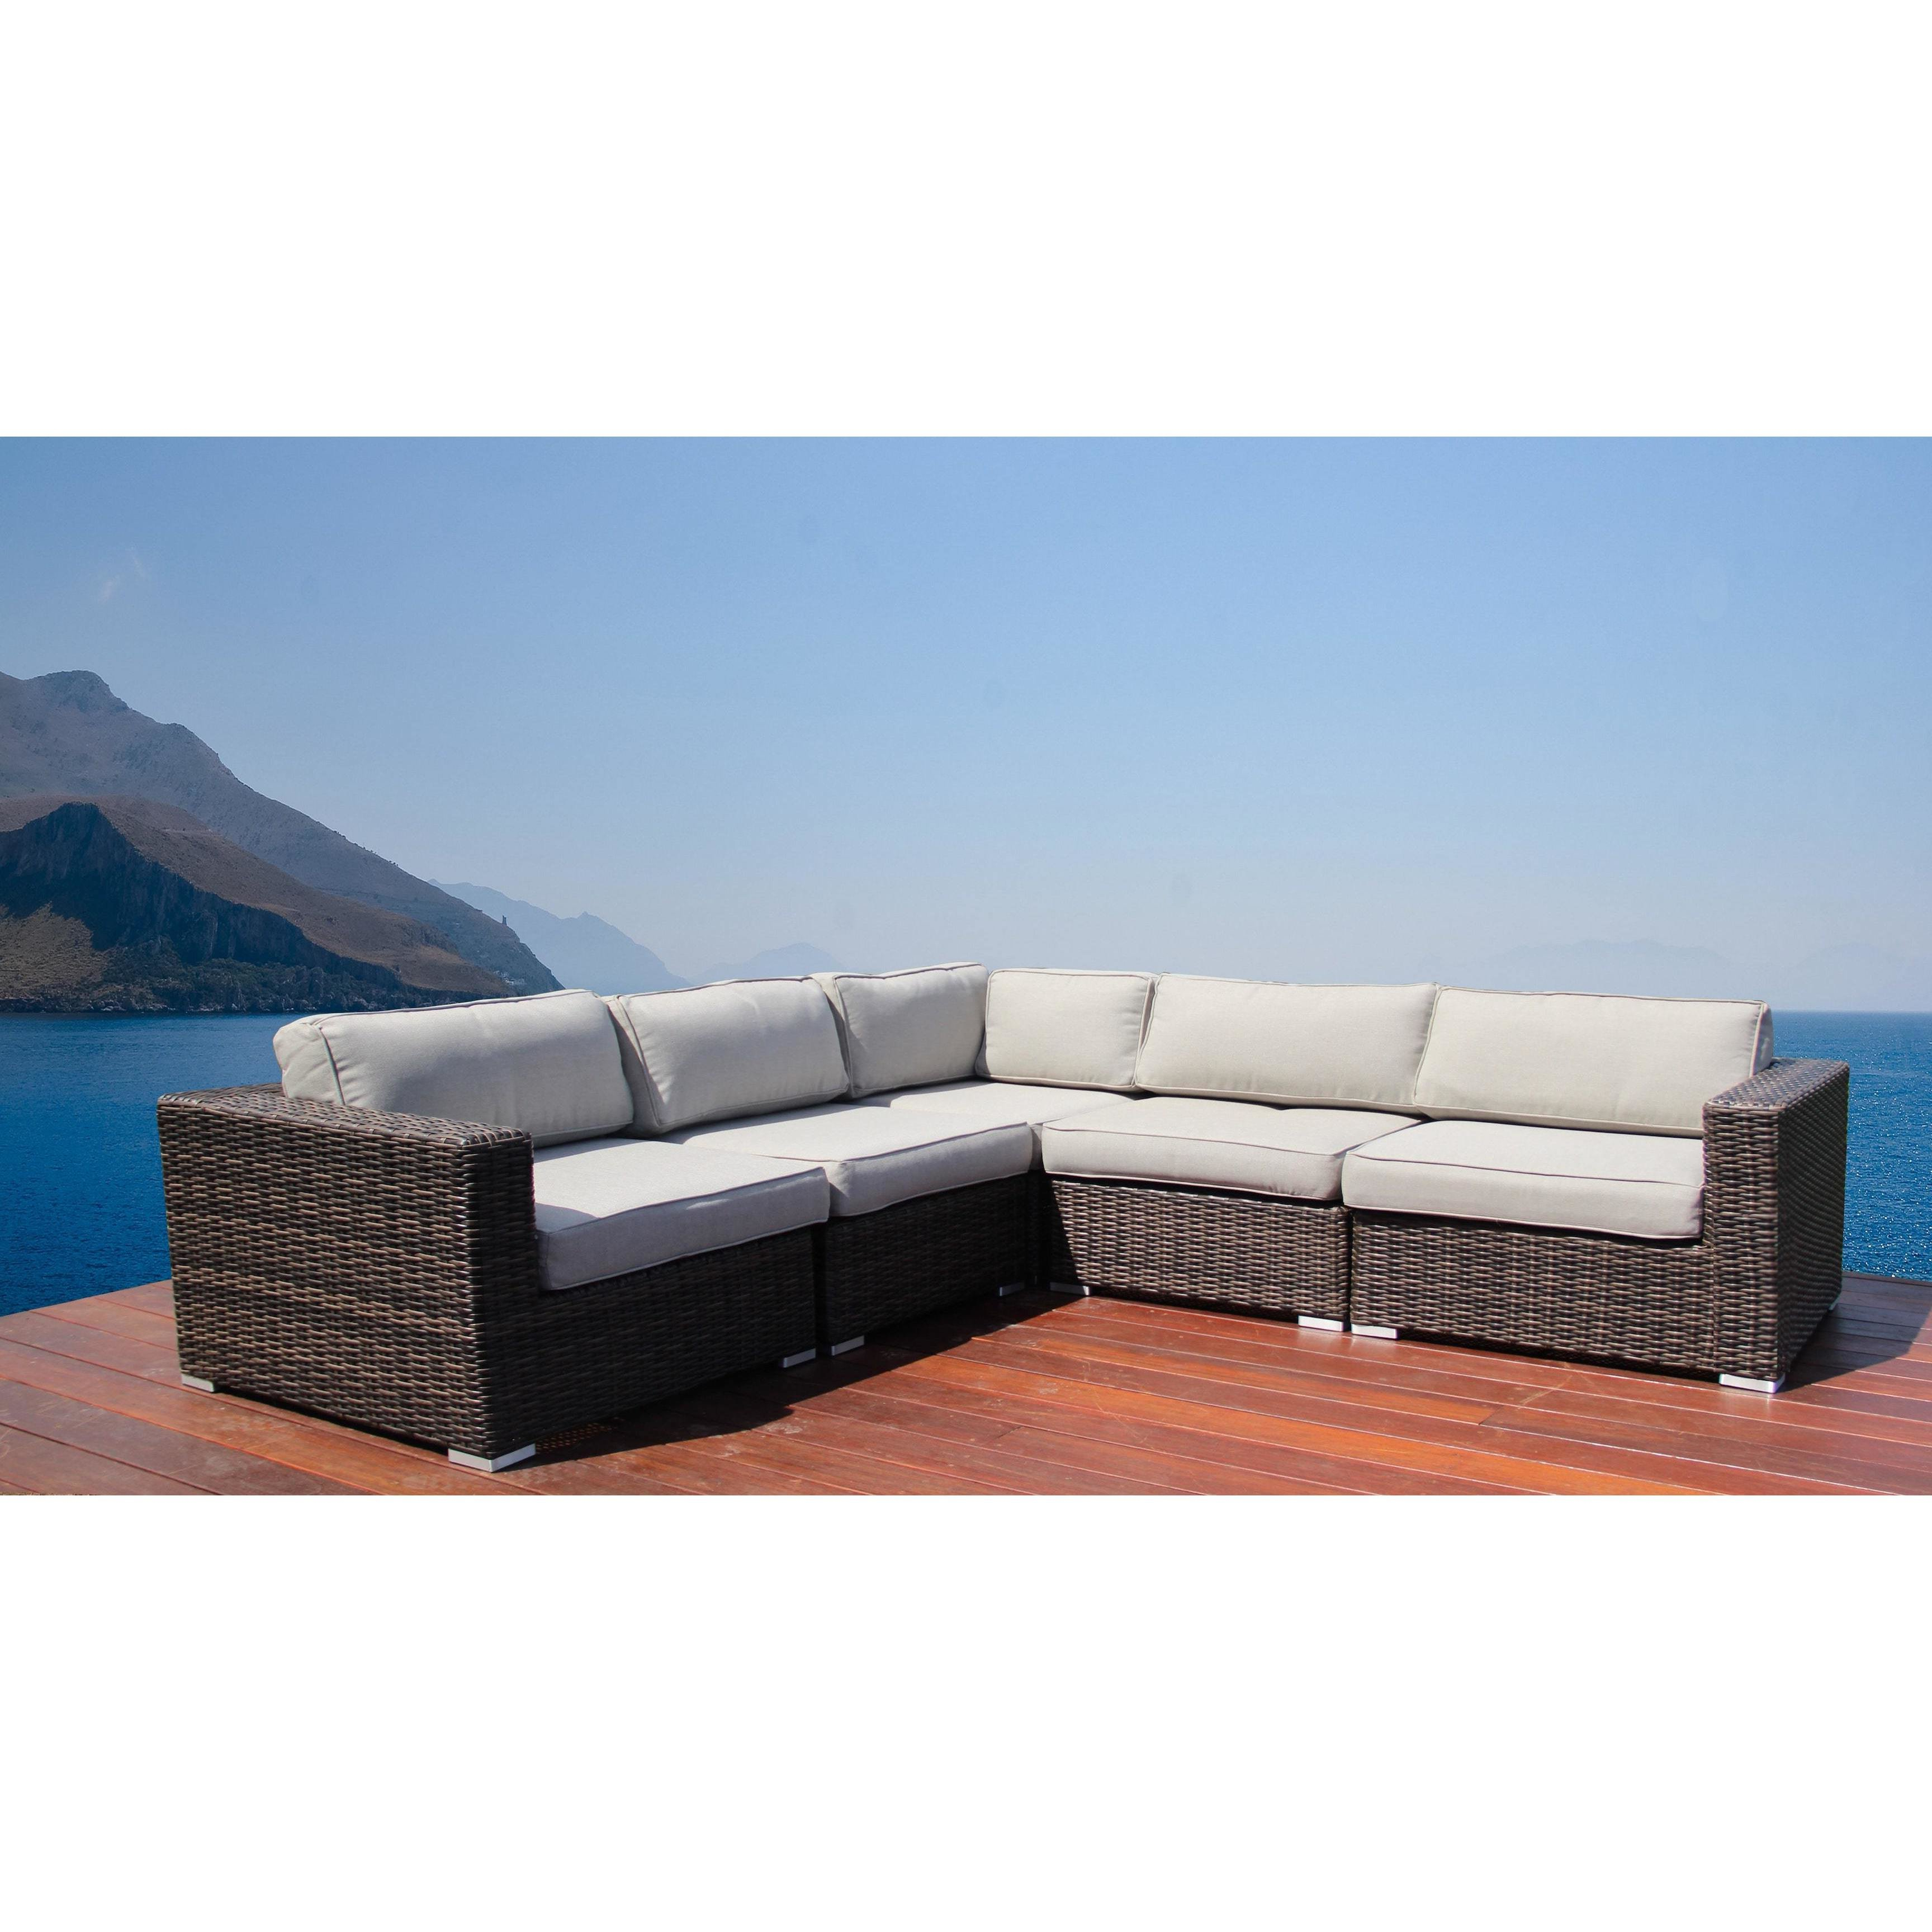 Lorentzen Patio Sectionals With Cushions Regarding Most Recent Latitude Run Nolen Patio Sectional With Cushions & Reviews (View 12 of 20)